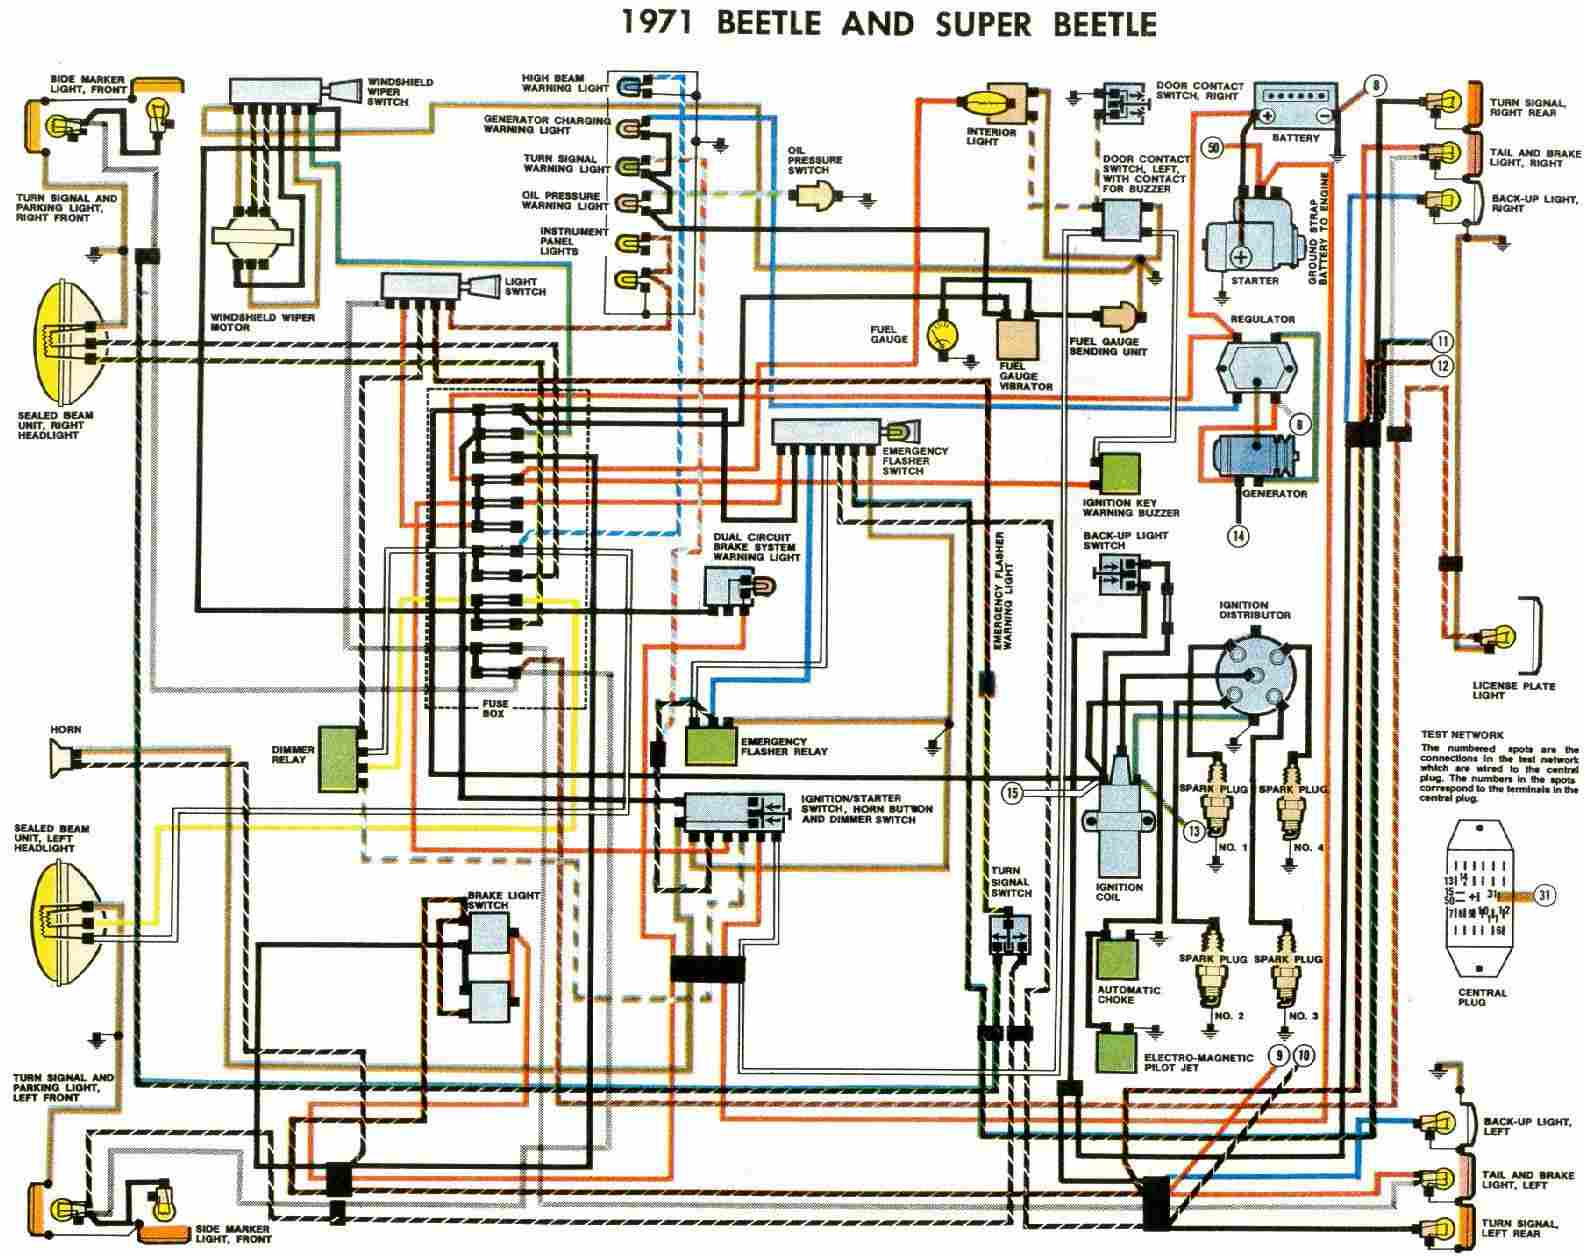 1971 Vw Beetle Wiring Diagram Another Blog About 1994 Thunderbird Super Coupe Schematic And Electrical